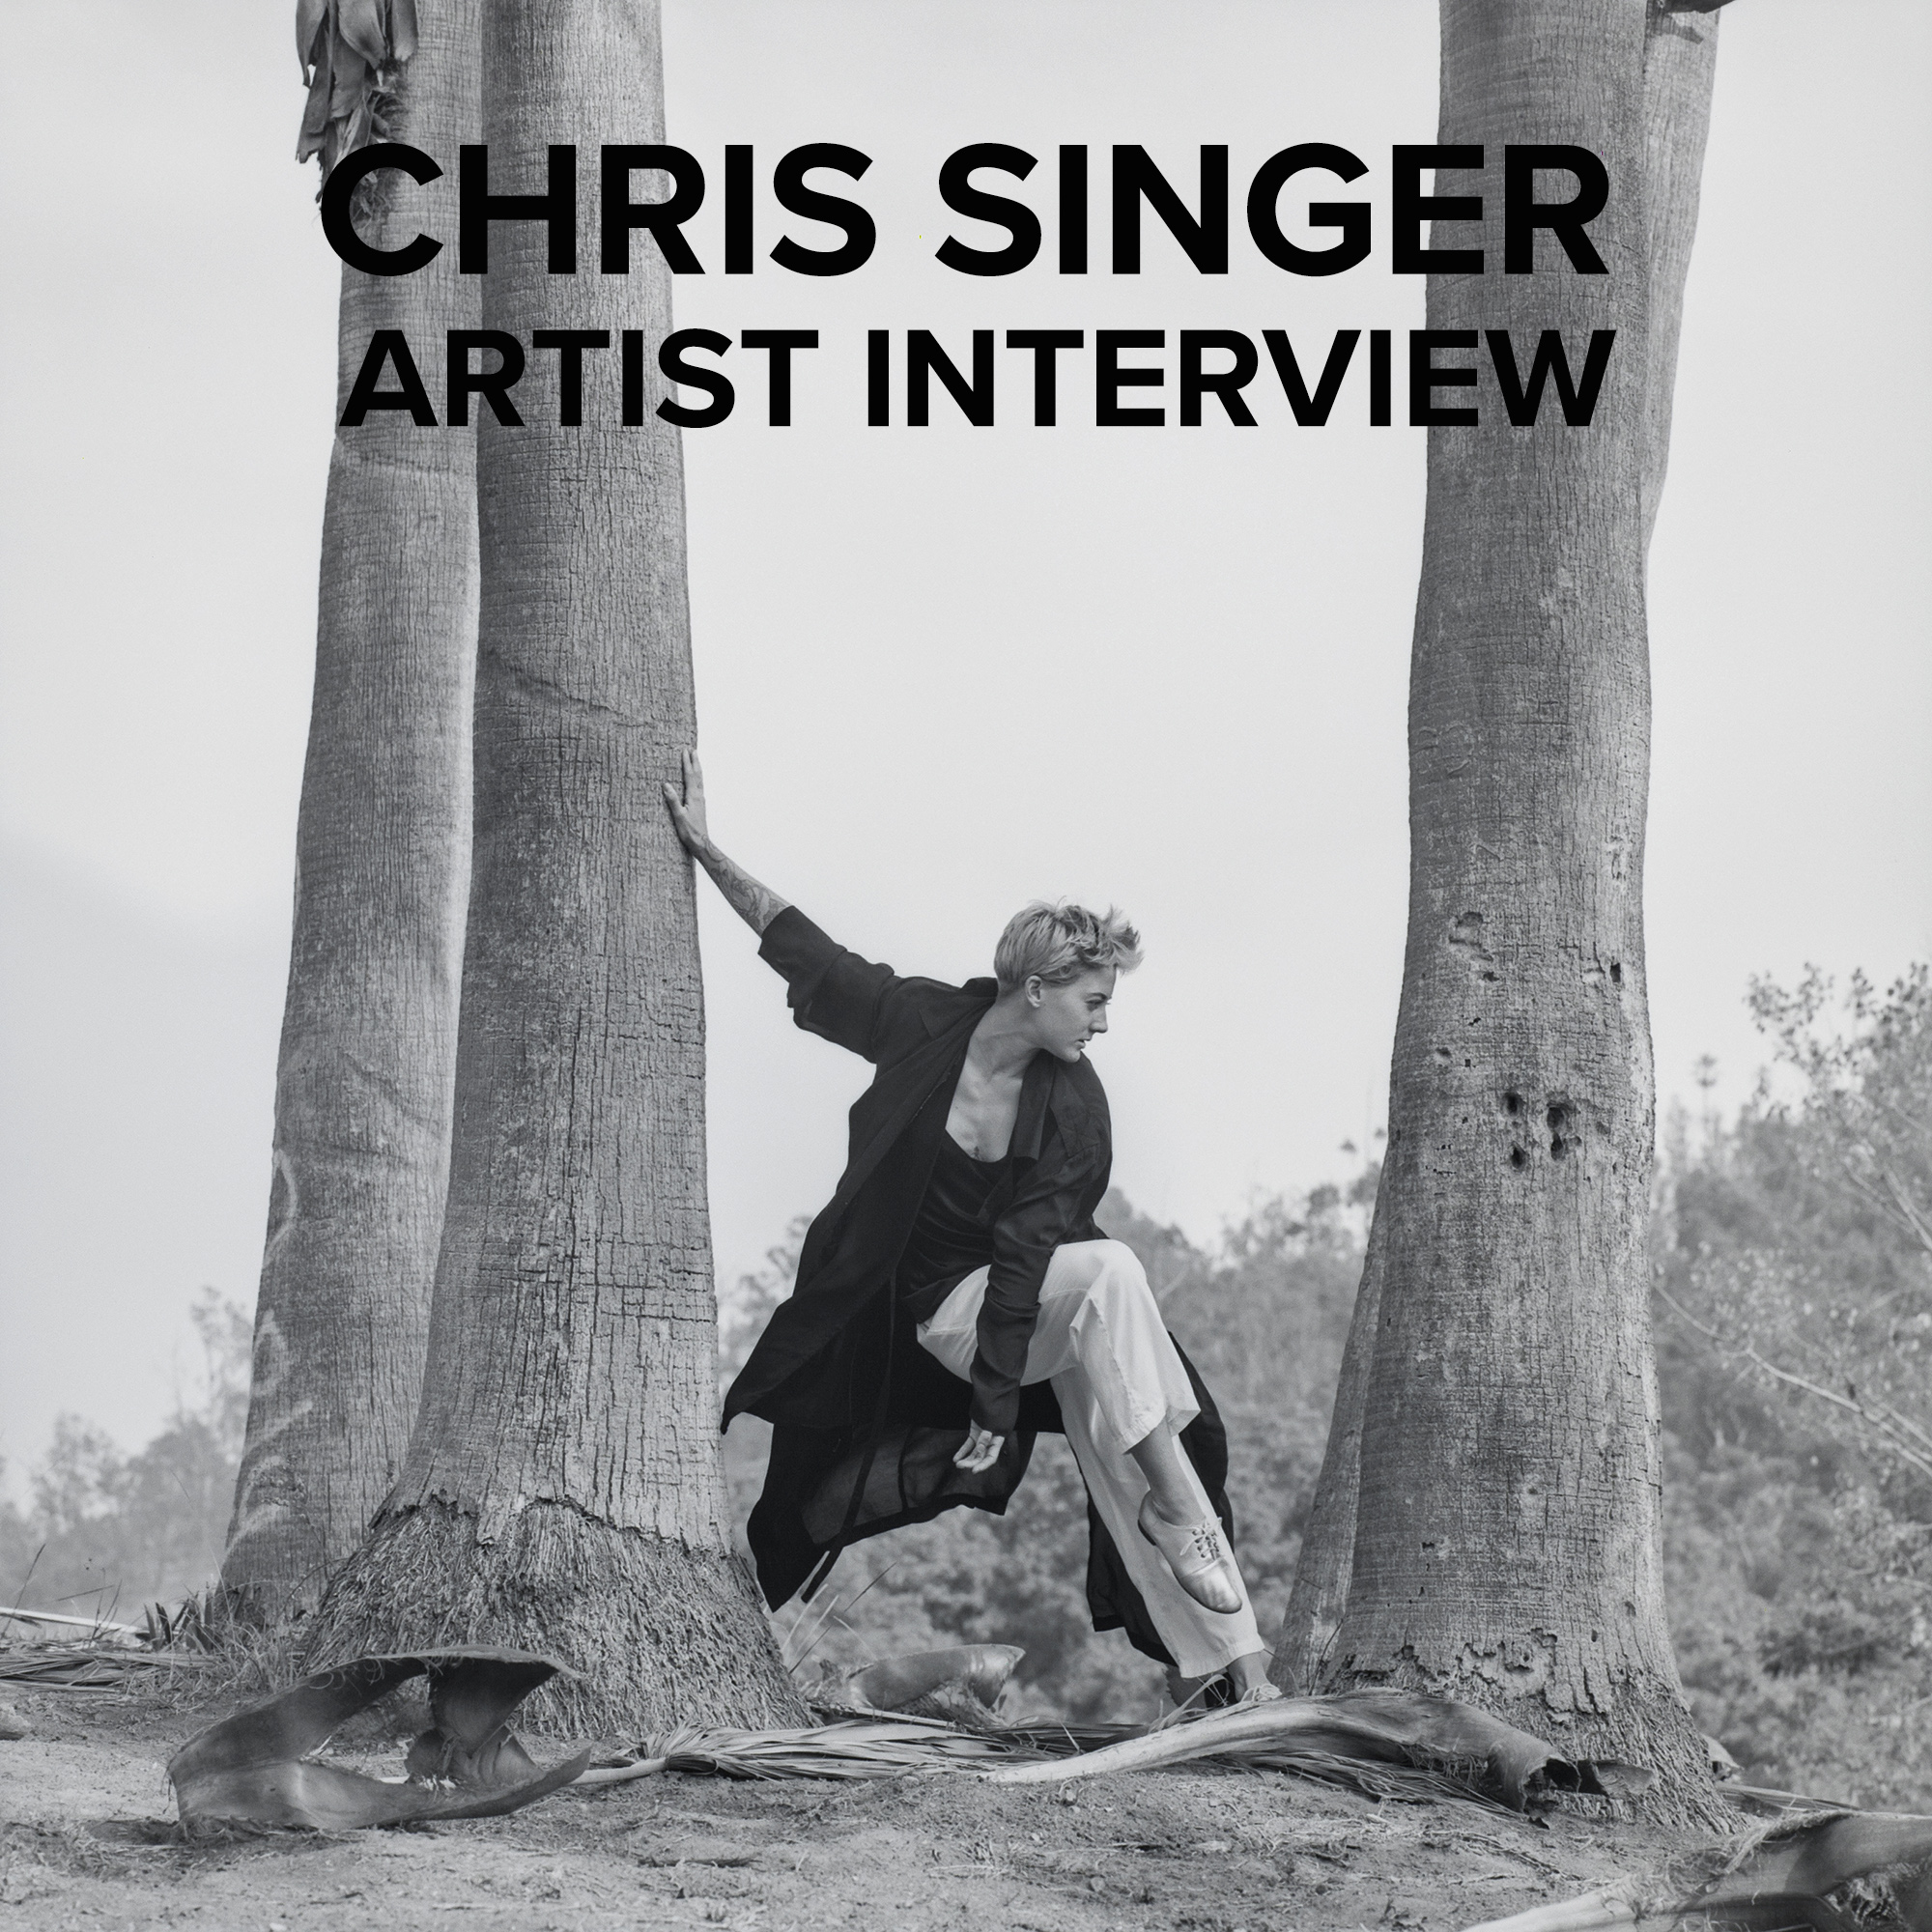 Lilly_Leithner015_ARTIST_INTERVIEW_CHRIS_SINGER.jpg